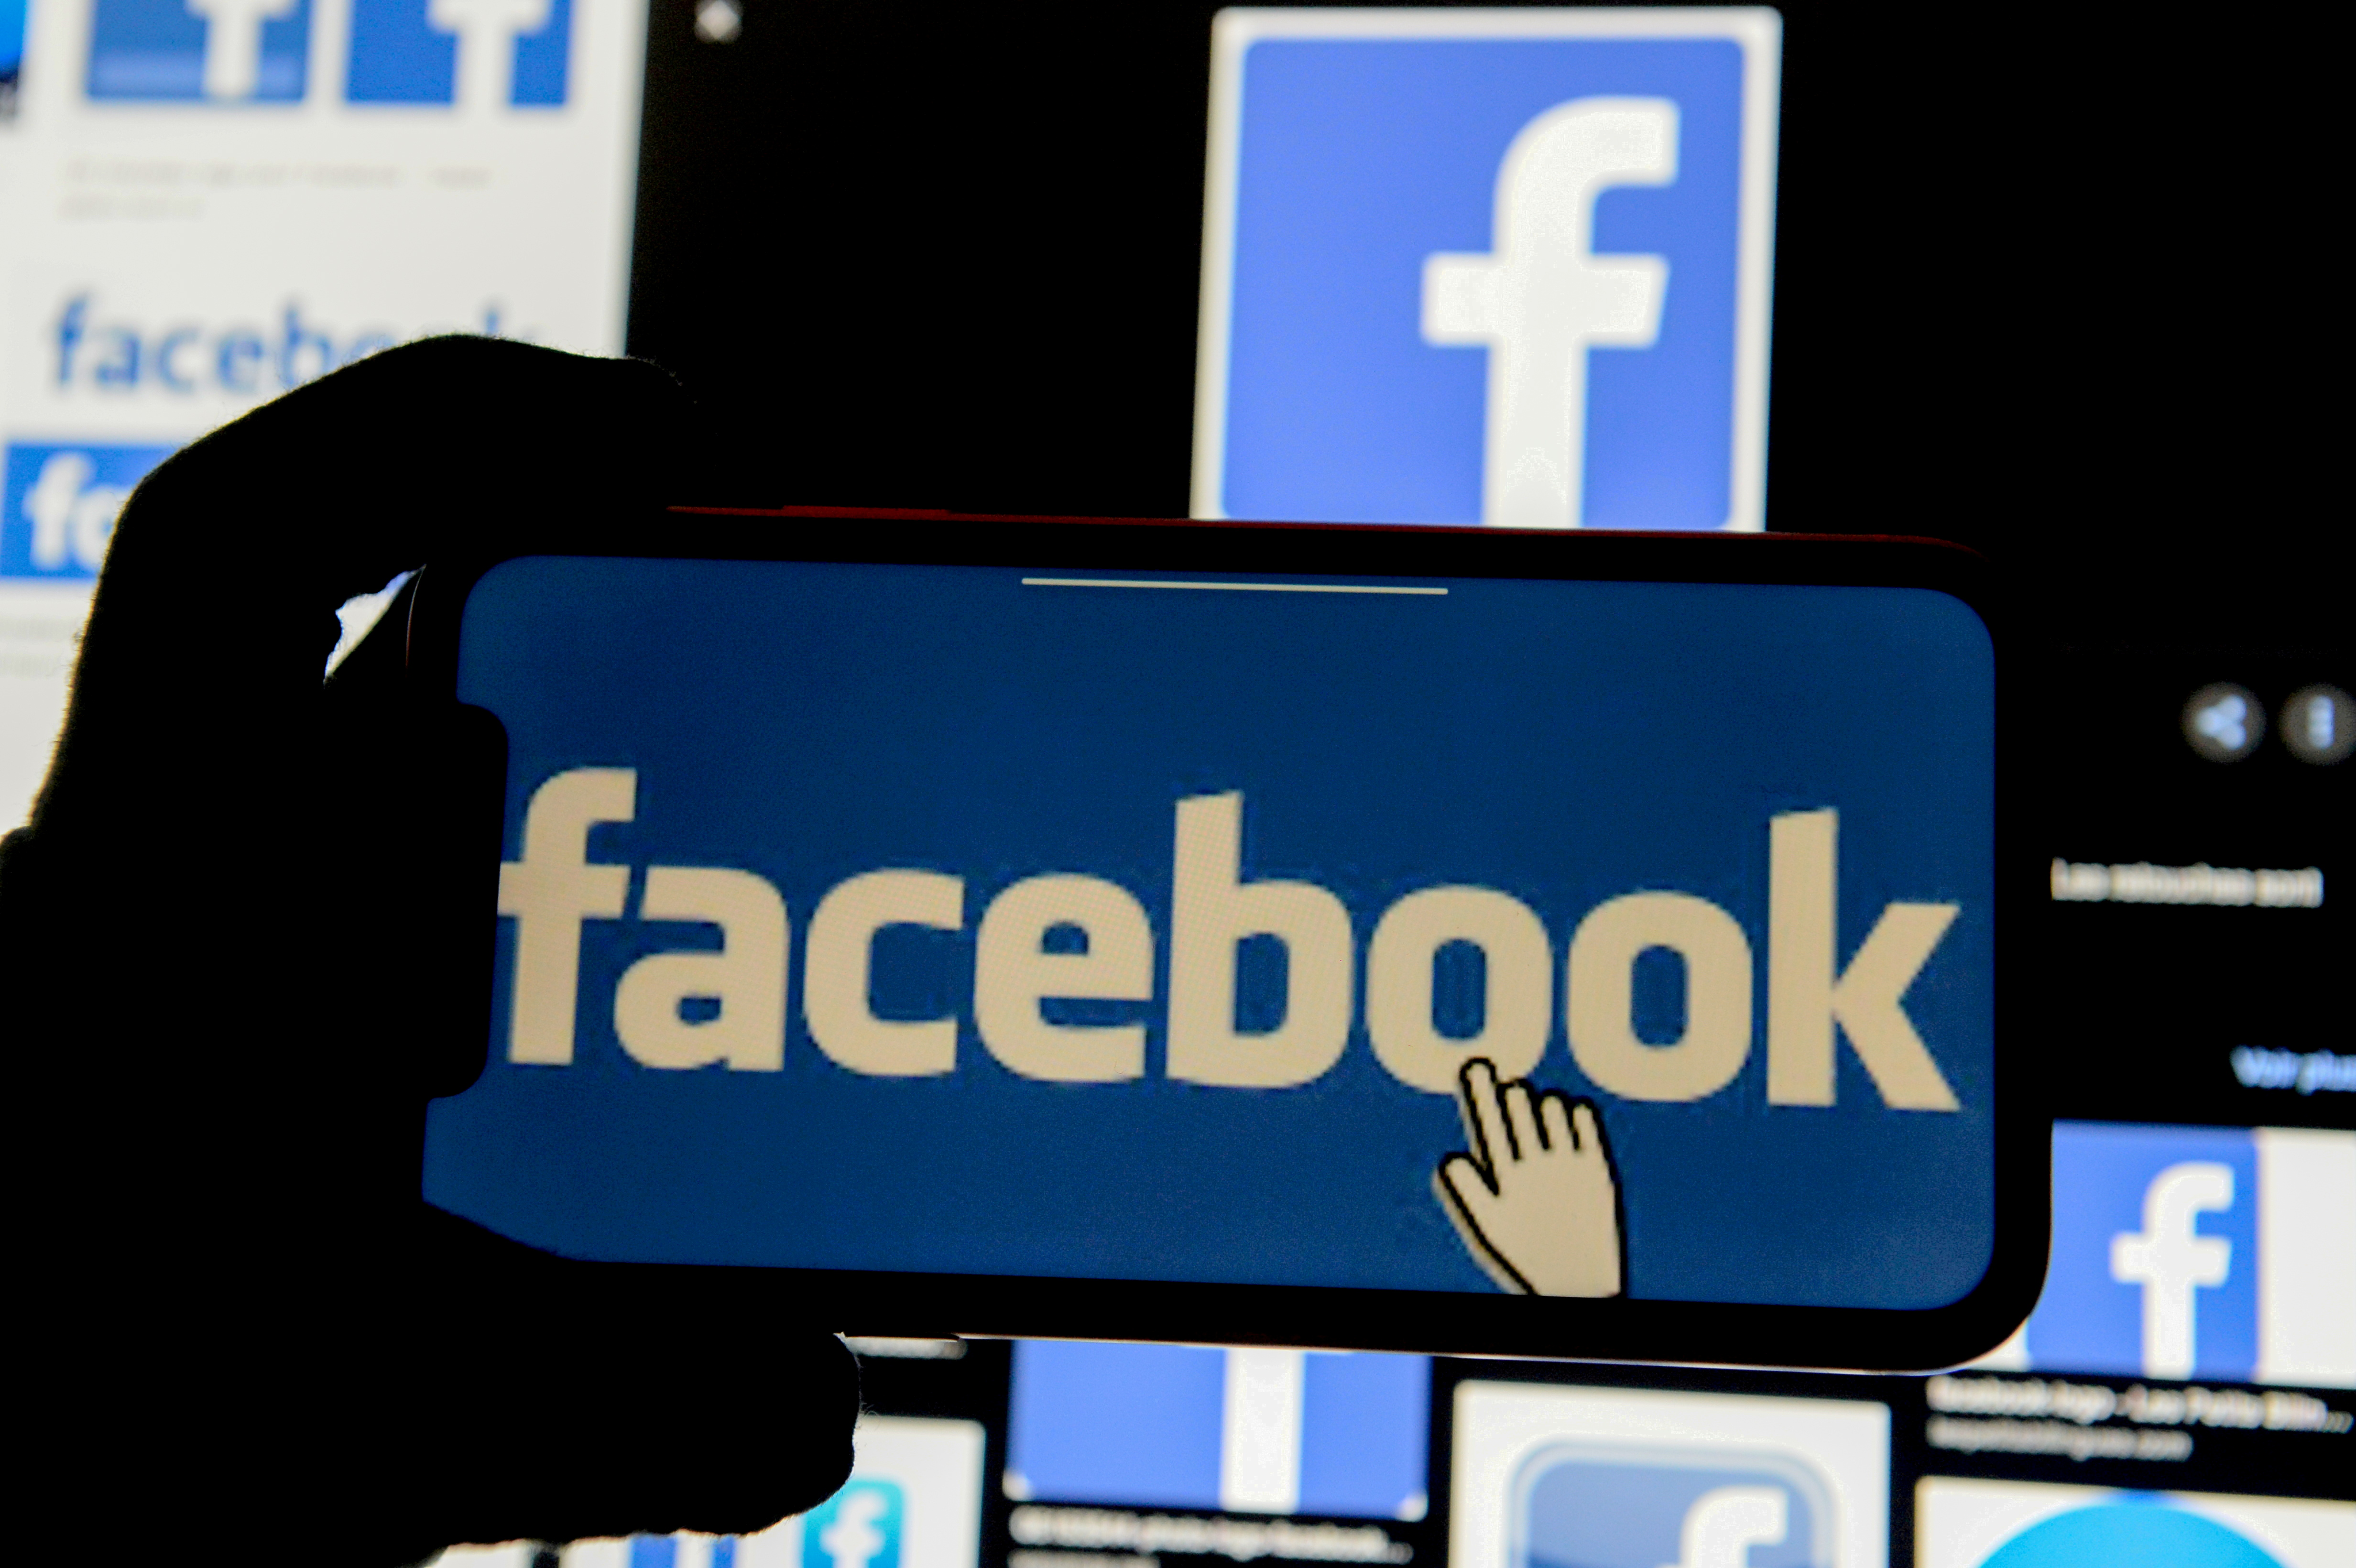 The Facebook logo is displayed on a mobile phone in this picture illustration taken December 2, 2019. REUTERS/Johanna Geron/Illustration